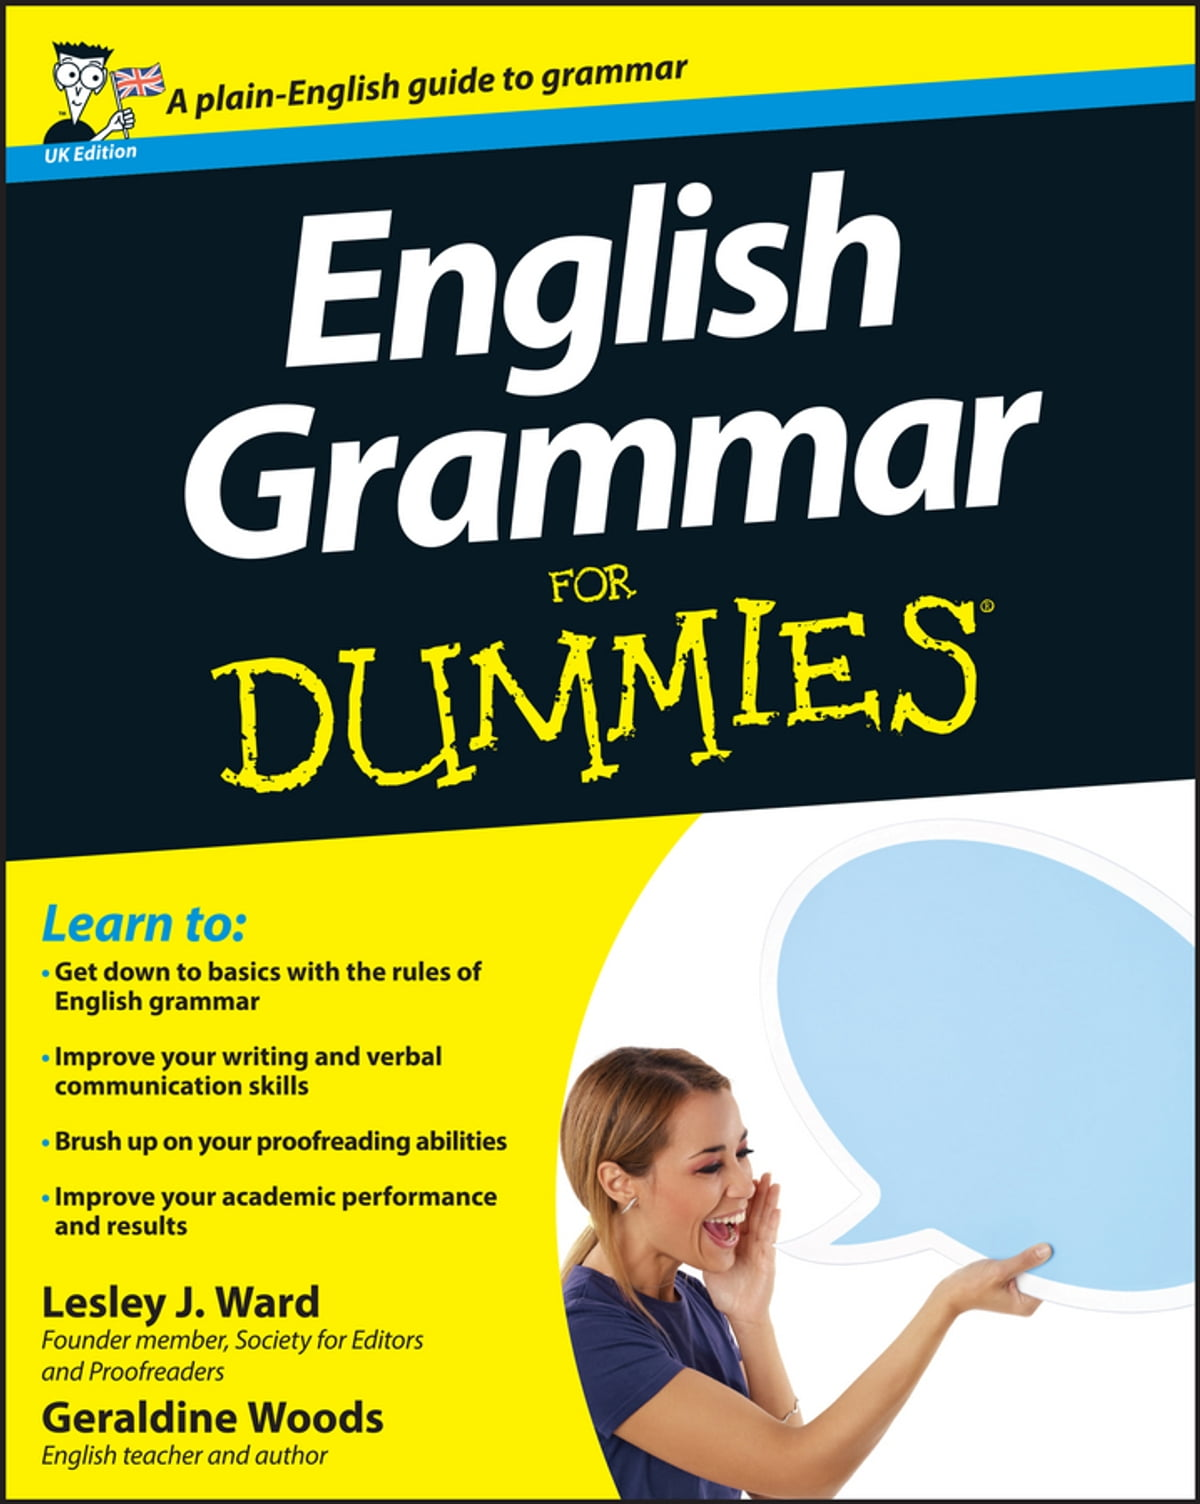 English Grammar For Dummies eBook by Lesley J. Ward - 9780470687048 |  Rakuten Kobo